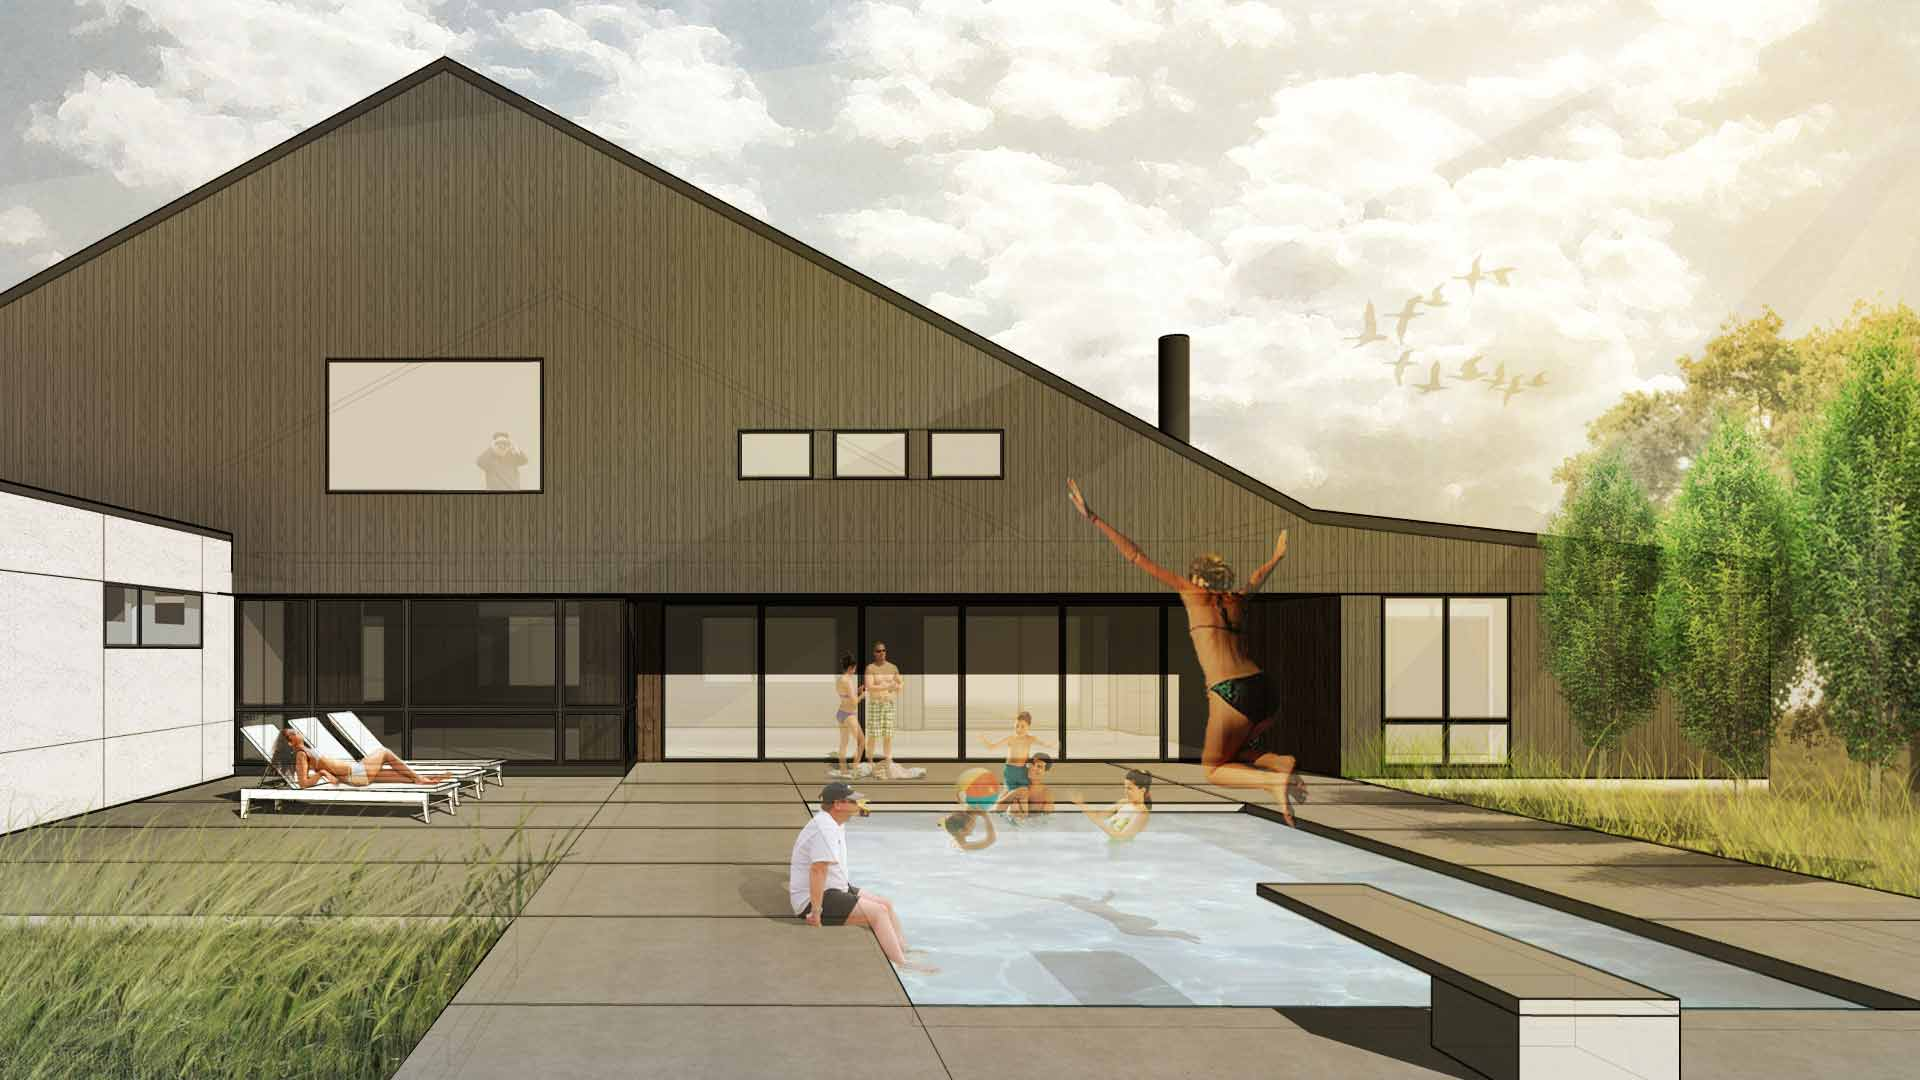 New Modern House 5 - New Modern Farmhouse - HAUS Architecture, Christopher Short, Indianapolis Architect